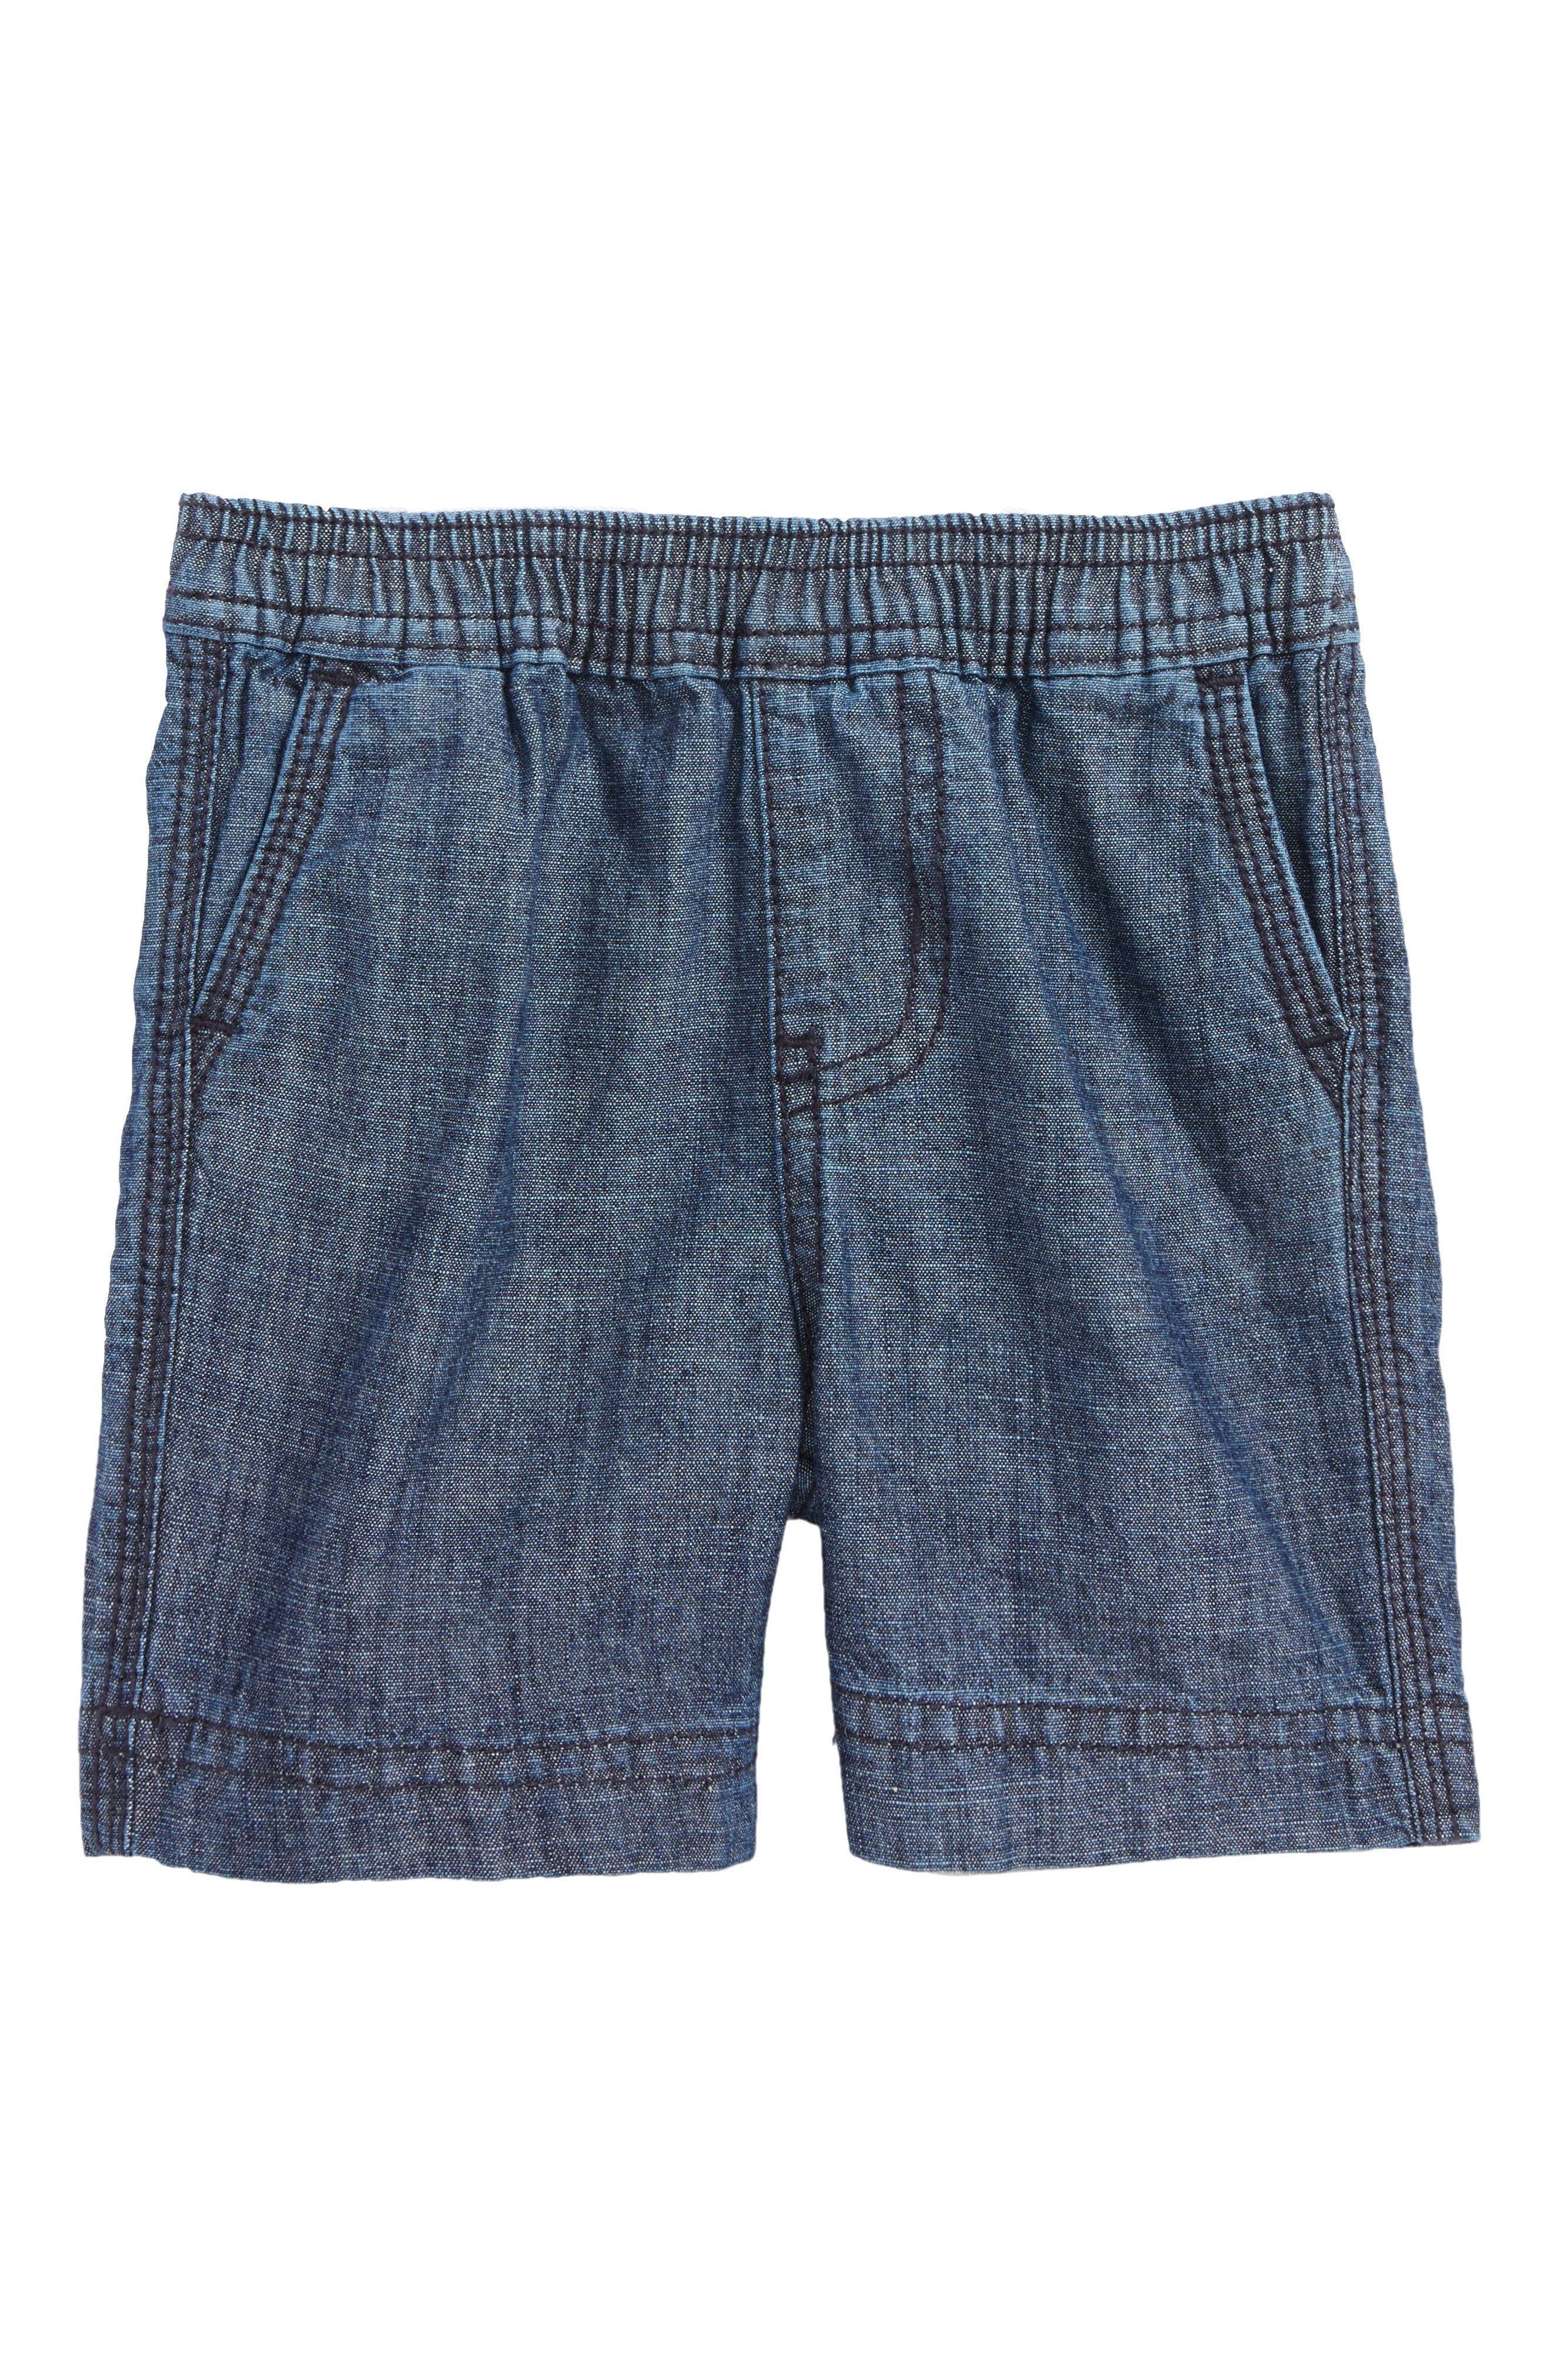 Easy Does It Chambray Shorts,                             Main thumbnail 1, color,                             Blue Chambray